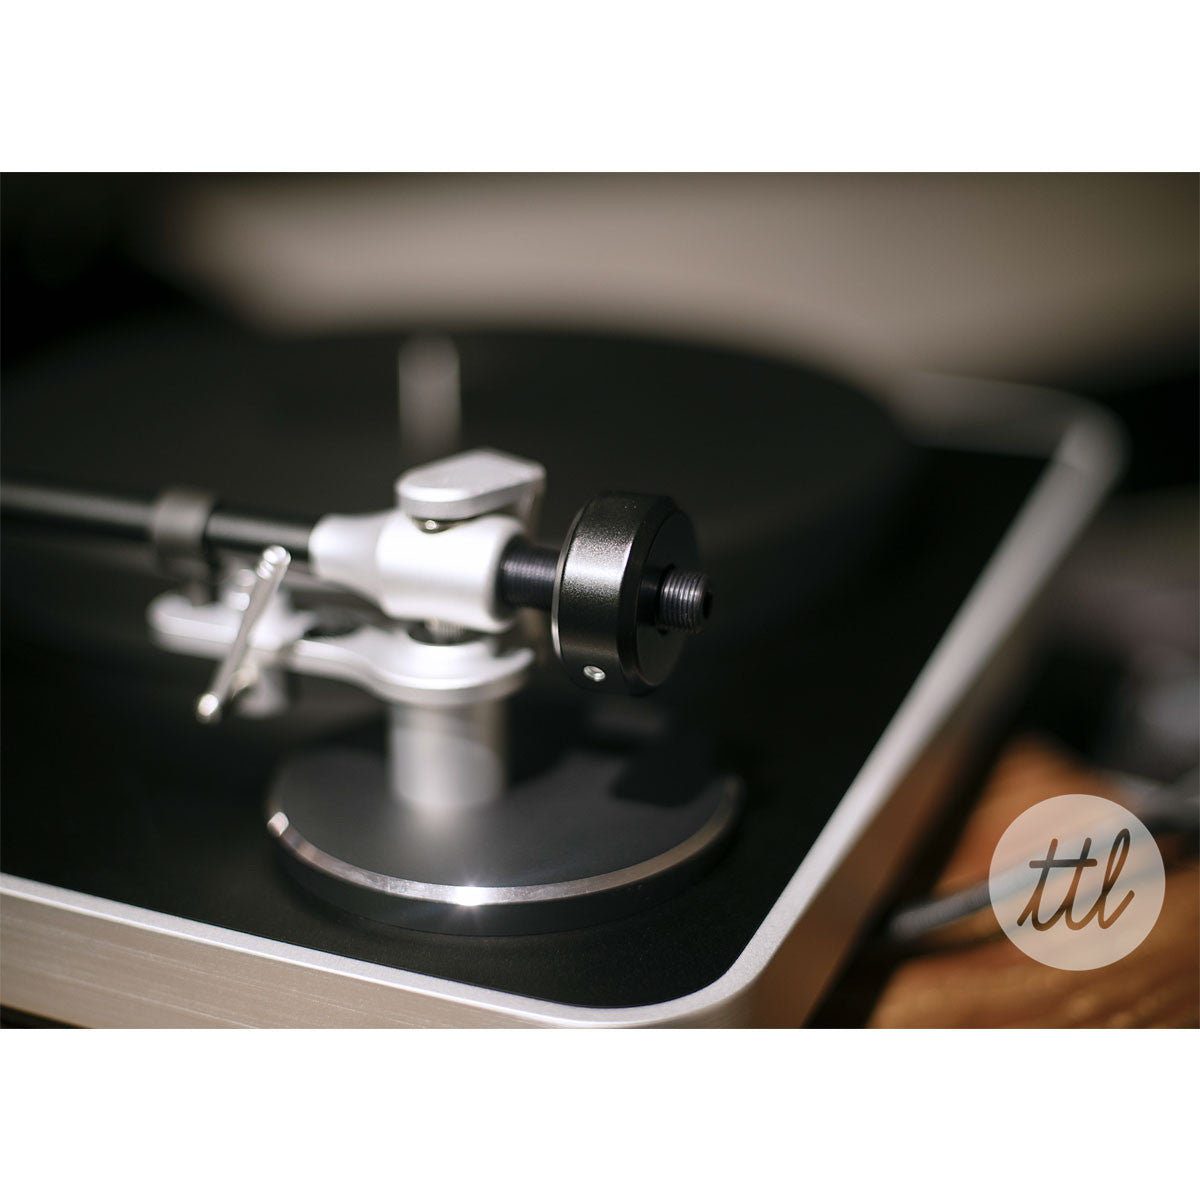 Clearaudio: Concept Turntable - Verify Tonearm / Concept MM Cartridge lifestyle tone arm